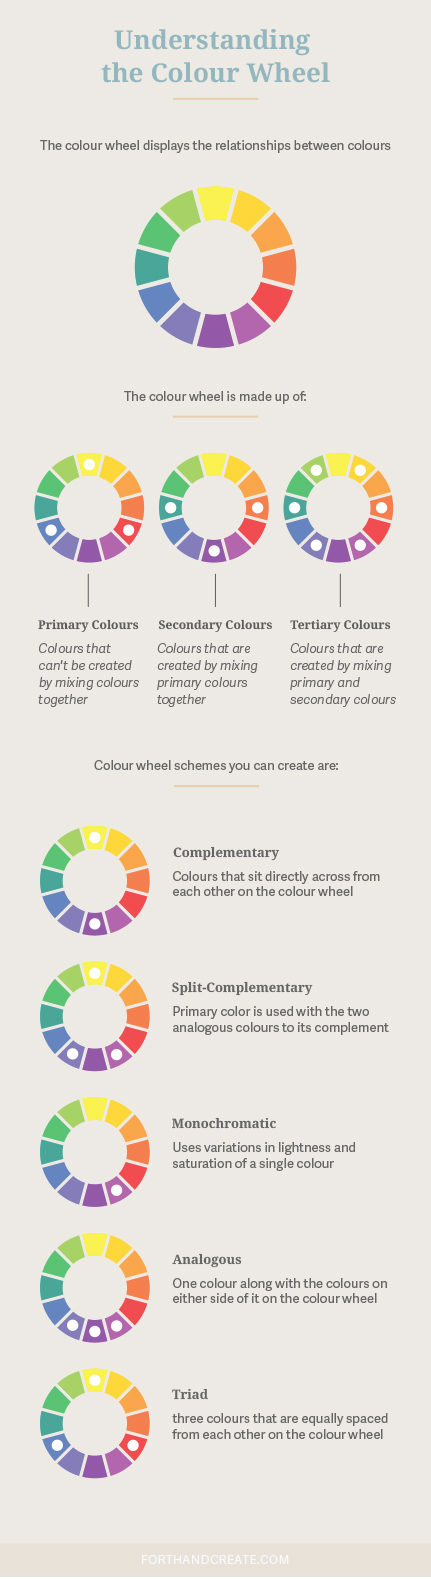 Learn how to use the colour wheel and why it's so beneficial for your next project. Become a colour wheel pro and create stunning palettes. #brandingidentity #colourtheory #colourpalette #brand #colourinspiration